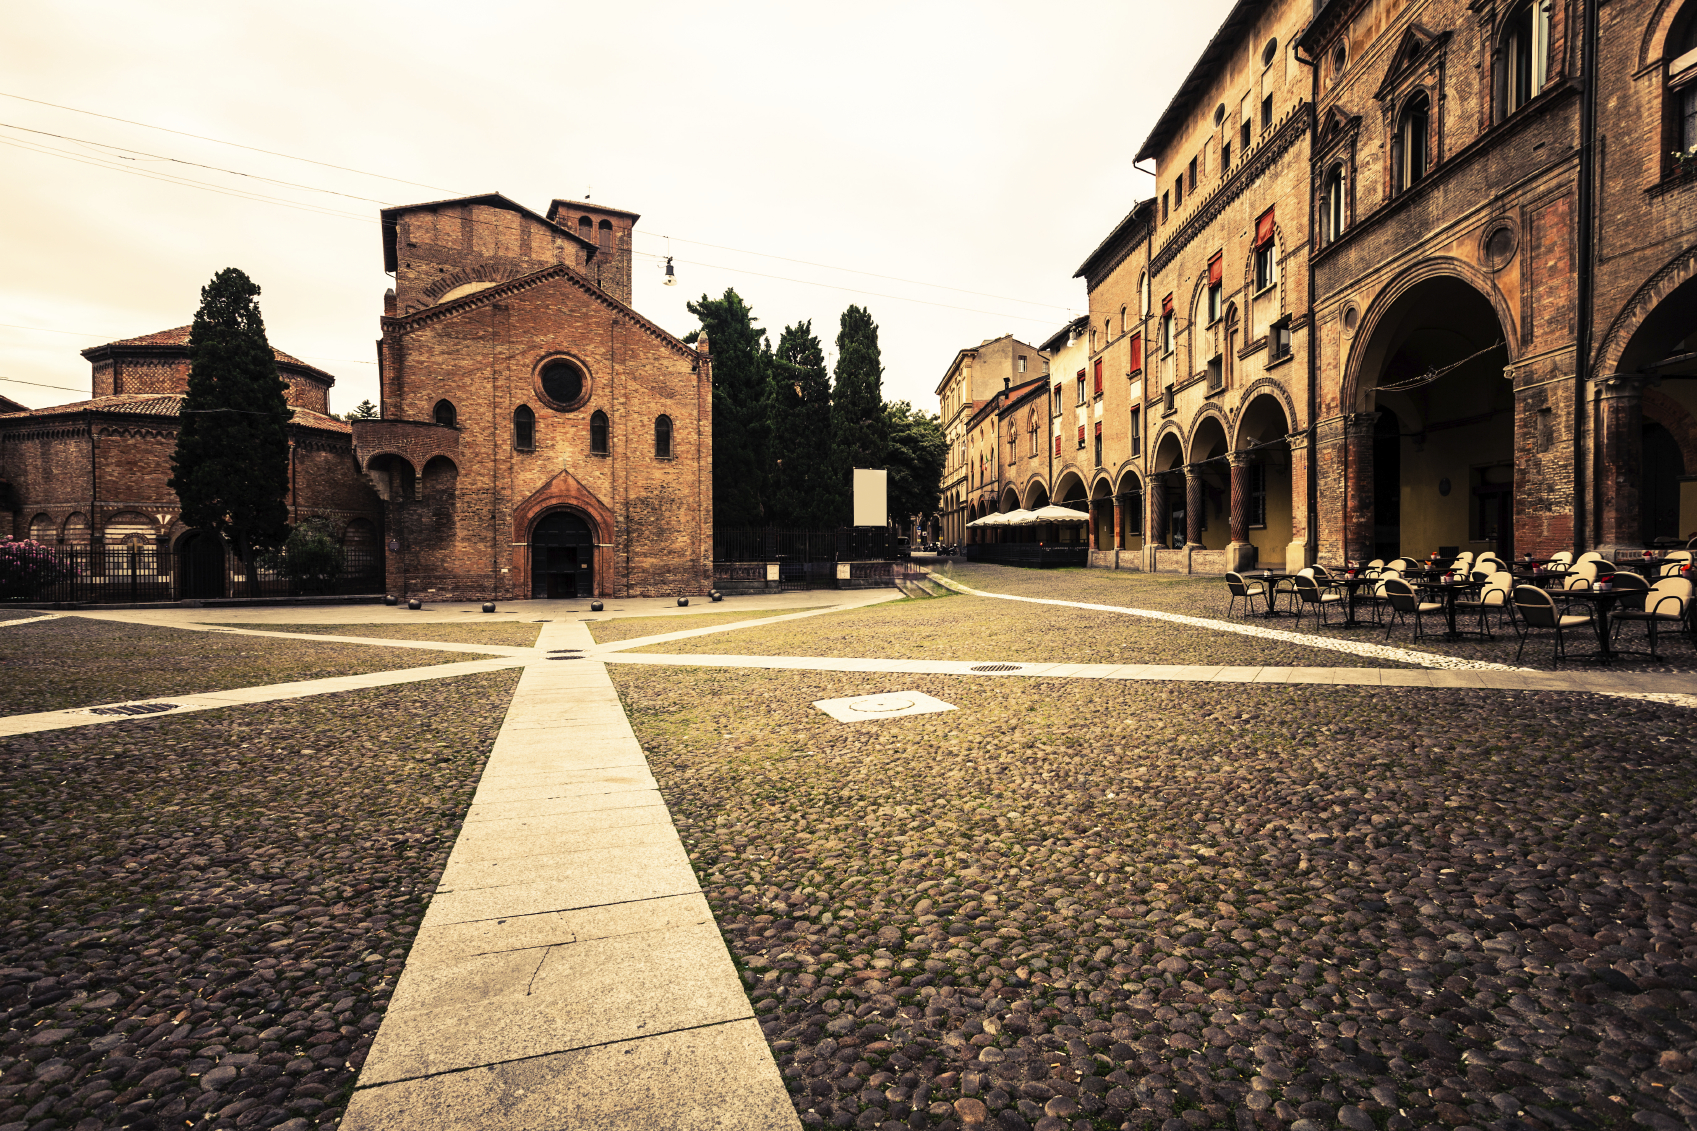 Seven Churches, Bologna